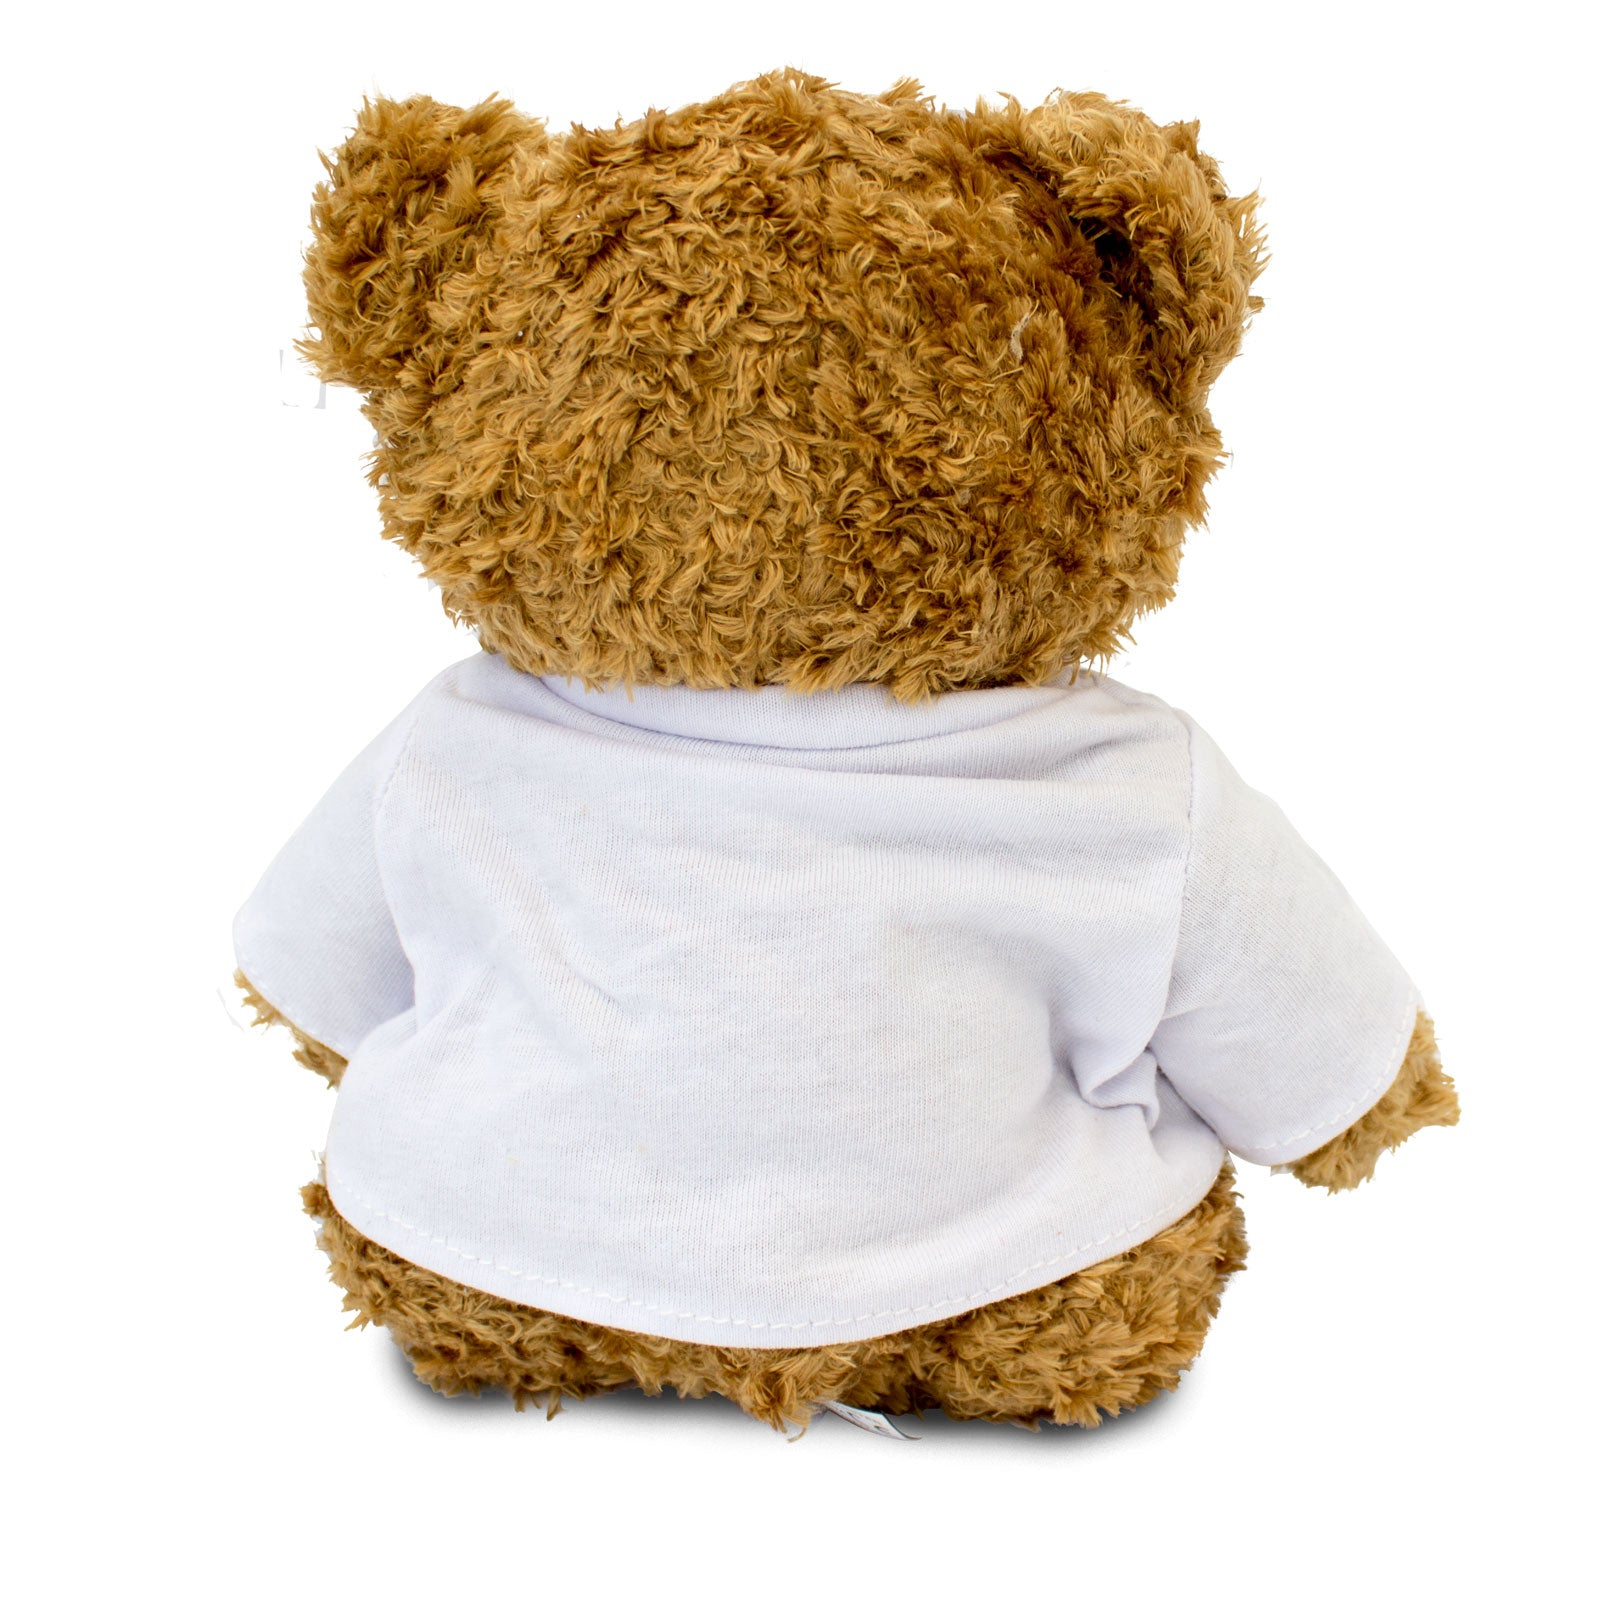 Back of teddy bear